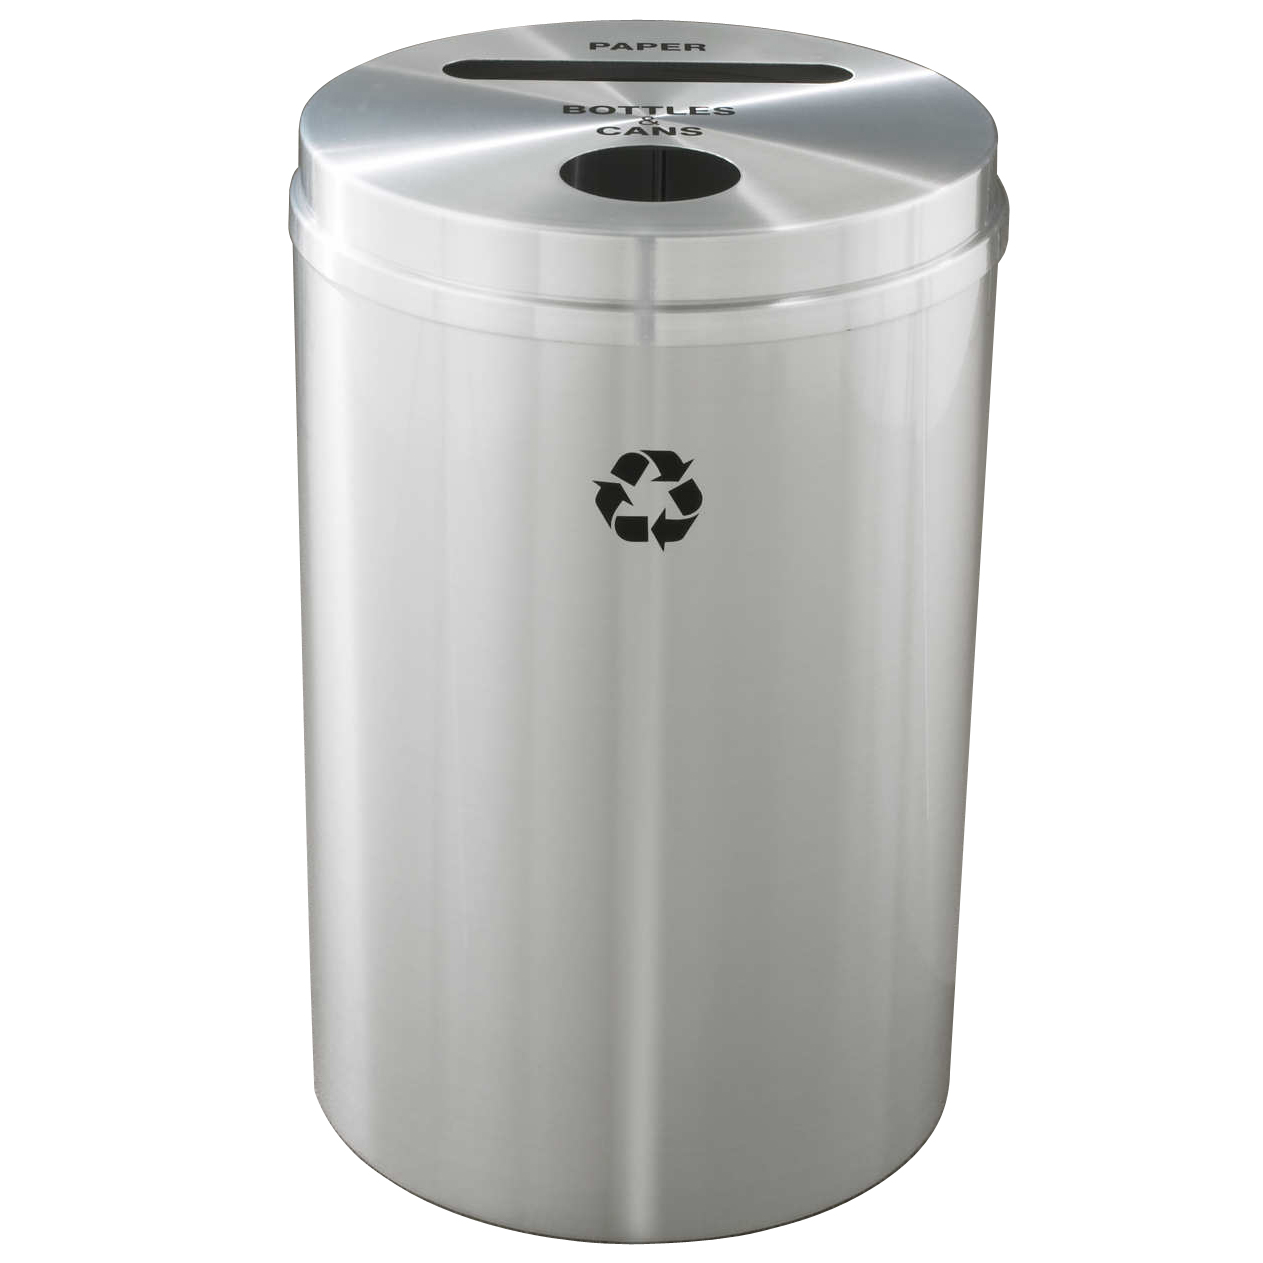 glaro dual purpose waste recycle bin in satin aluminum trash cans warehouse. Black Bedroom Furniture Sets. Home Design Ideas